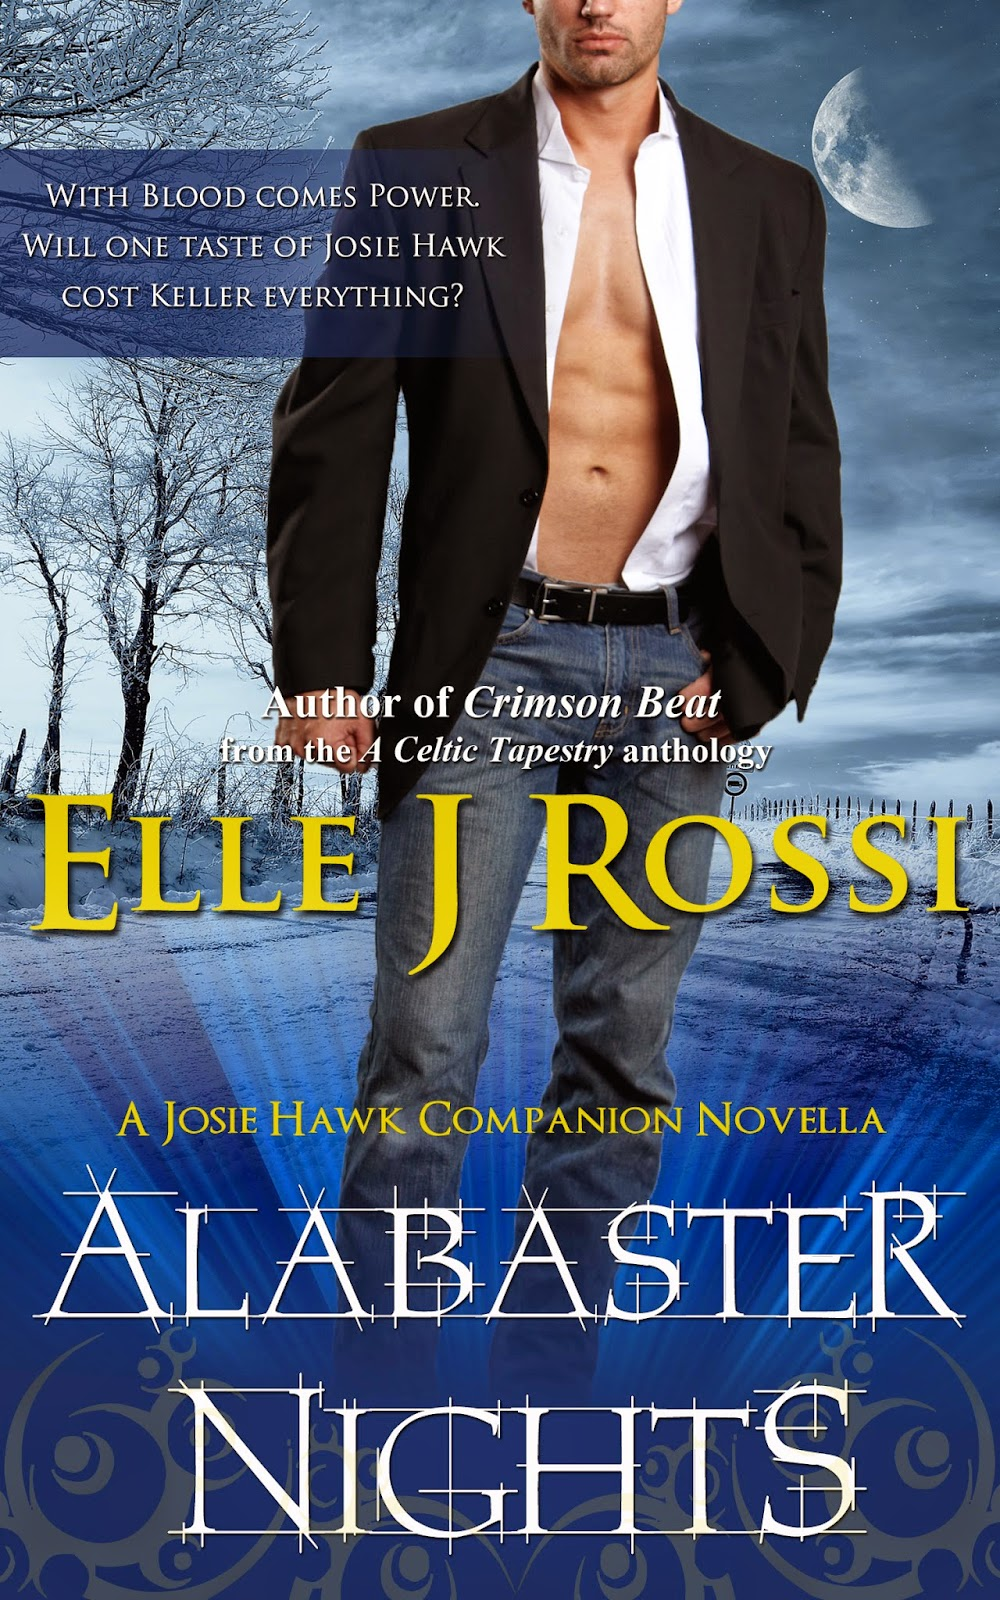 https://www.goodreads.com/book/show/18515993-alabaster-nights?ac=1